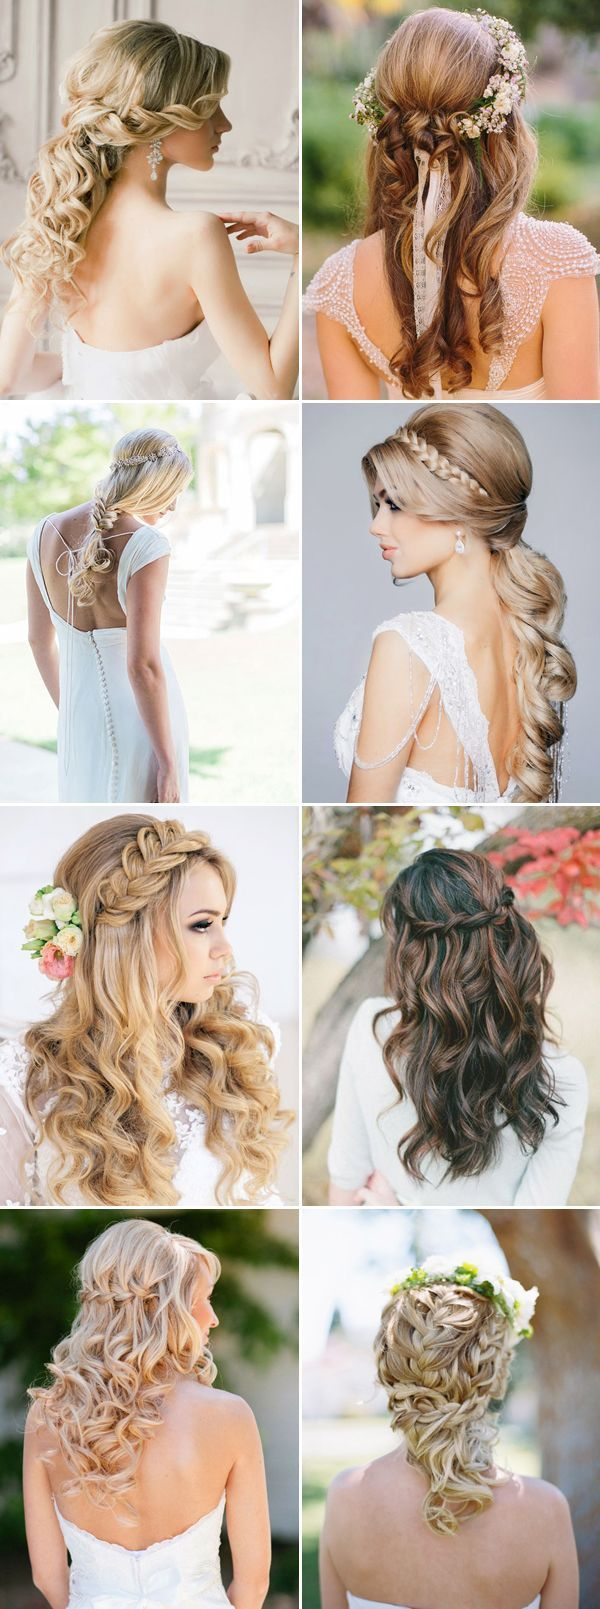 Half Down Wedding Hairstyles. With Half Down Wedding Hairstyles ...